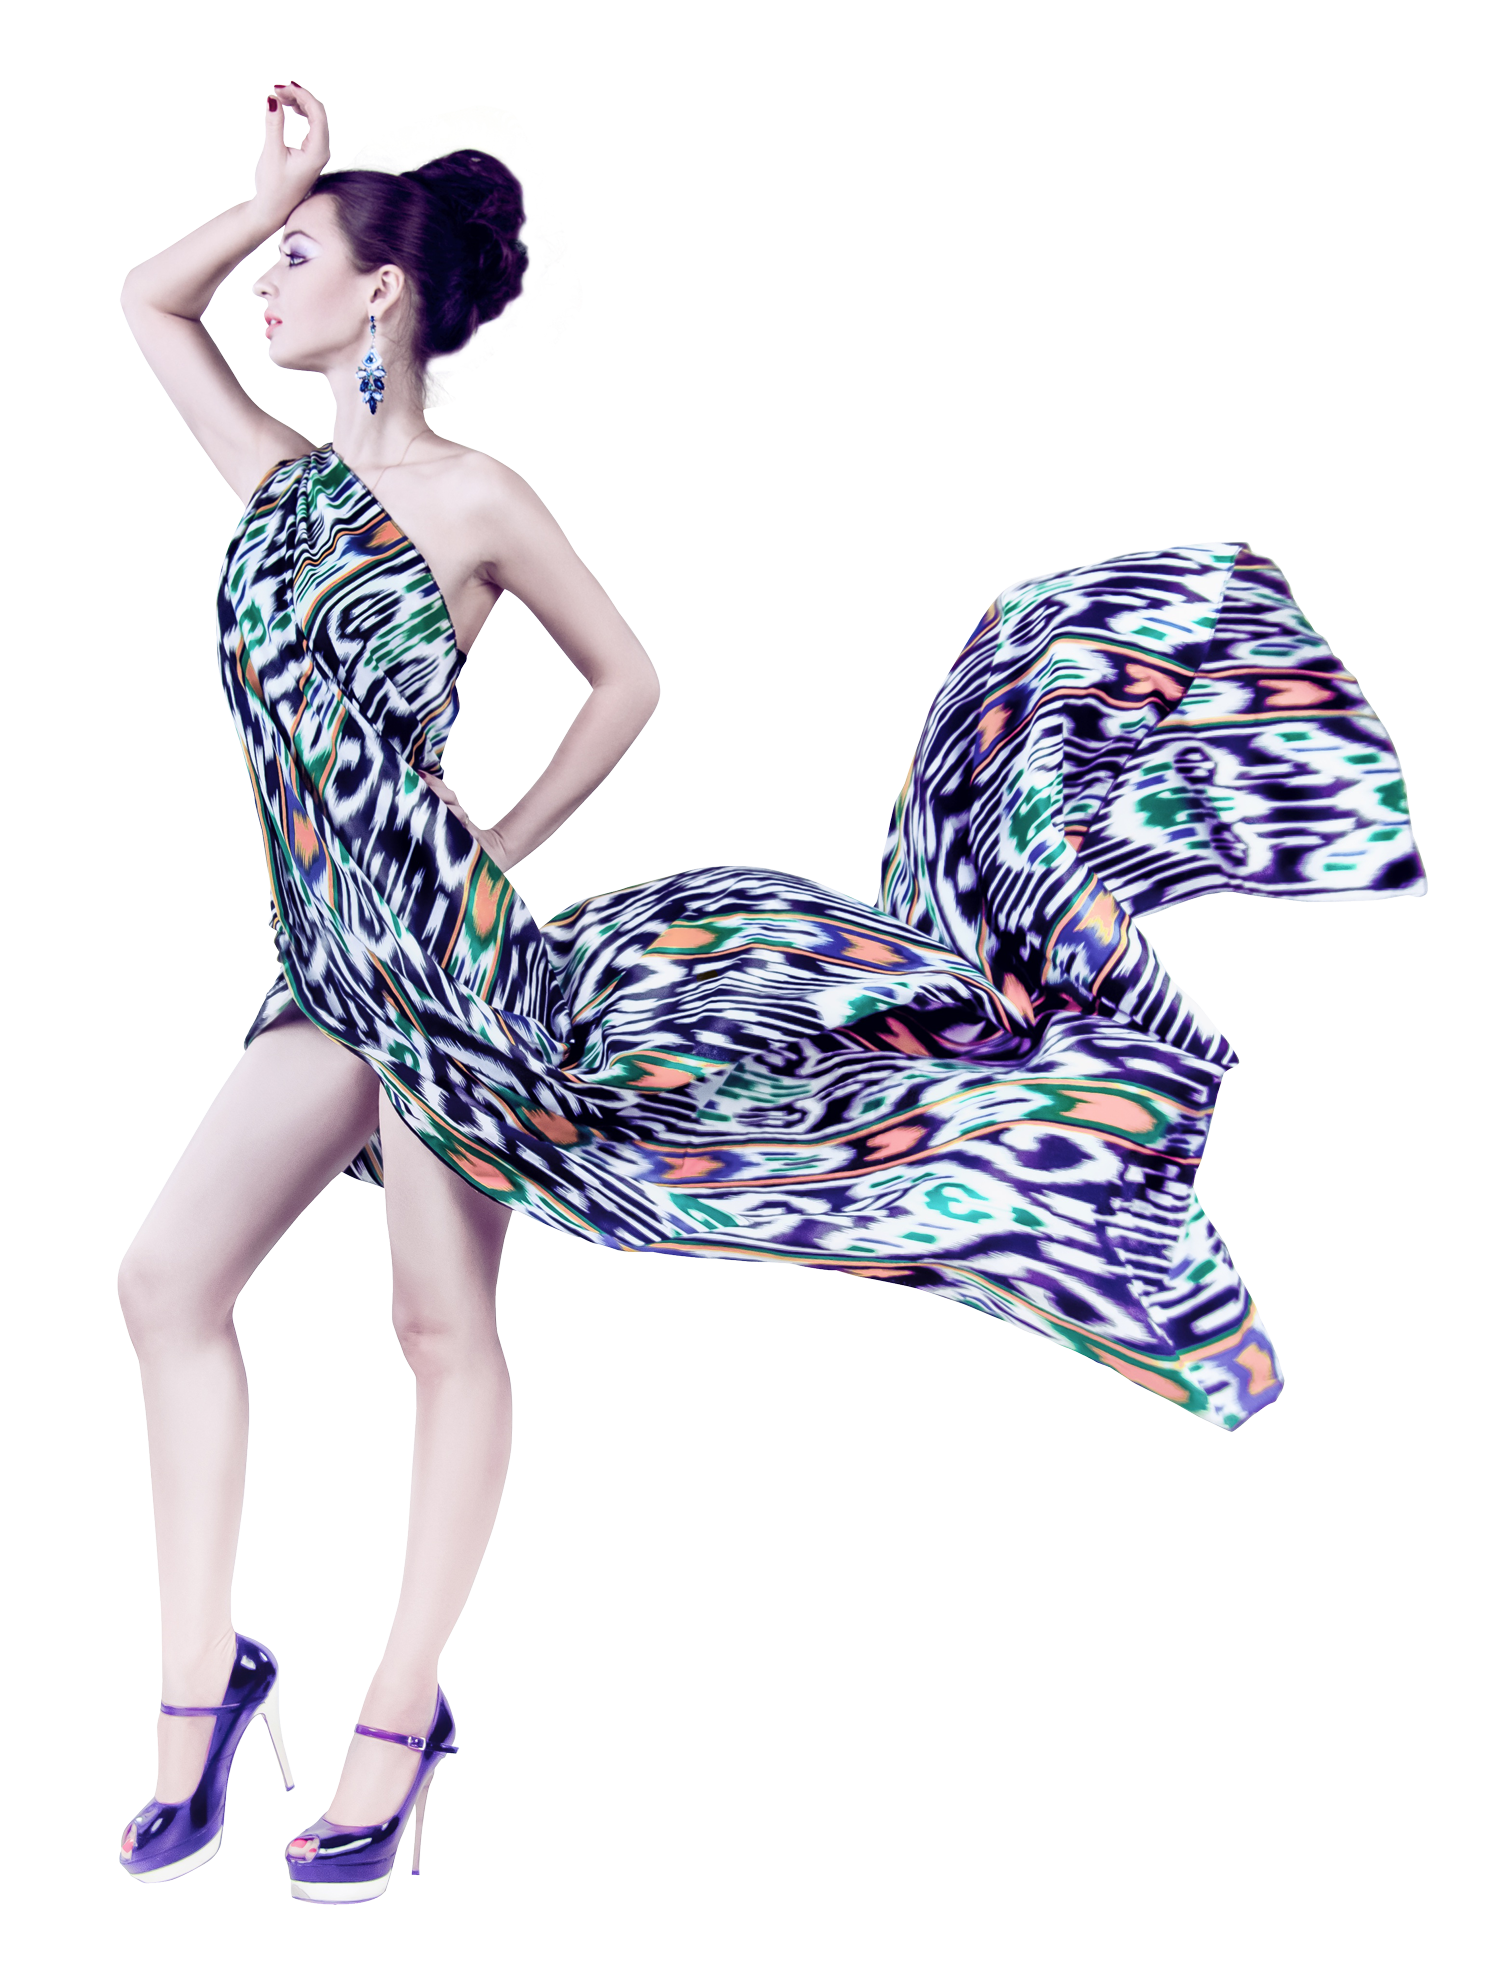 Png fashion. Transparent images pluspng young